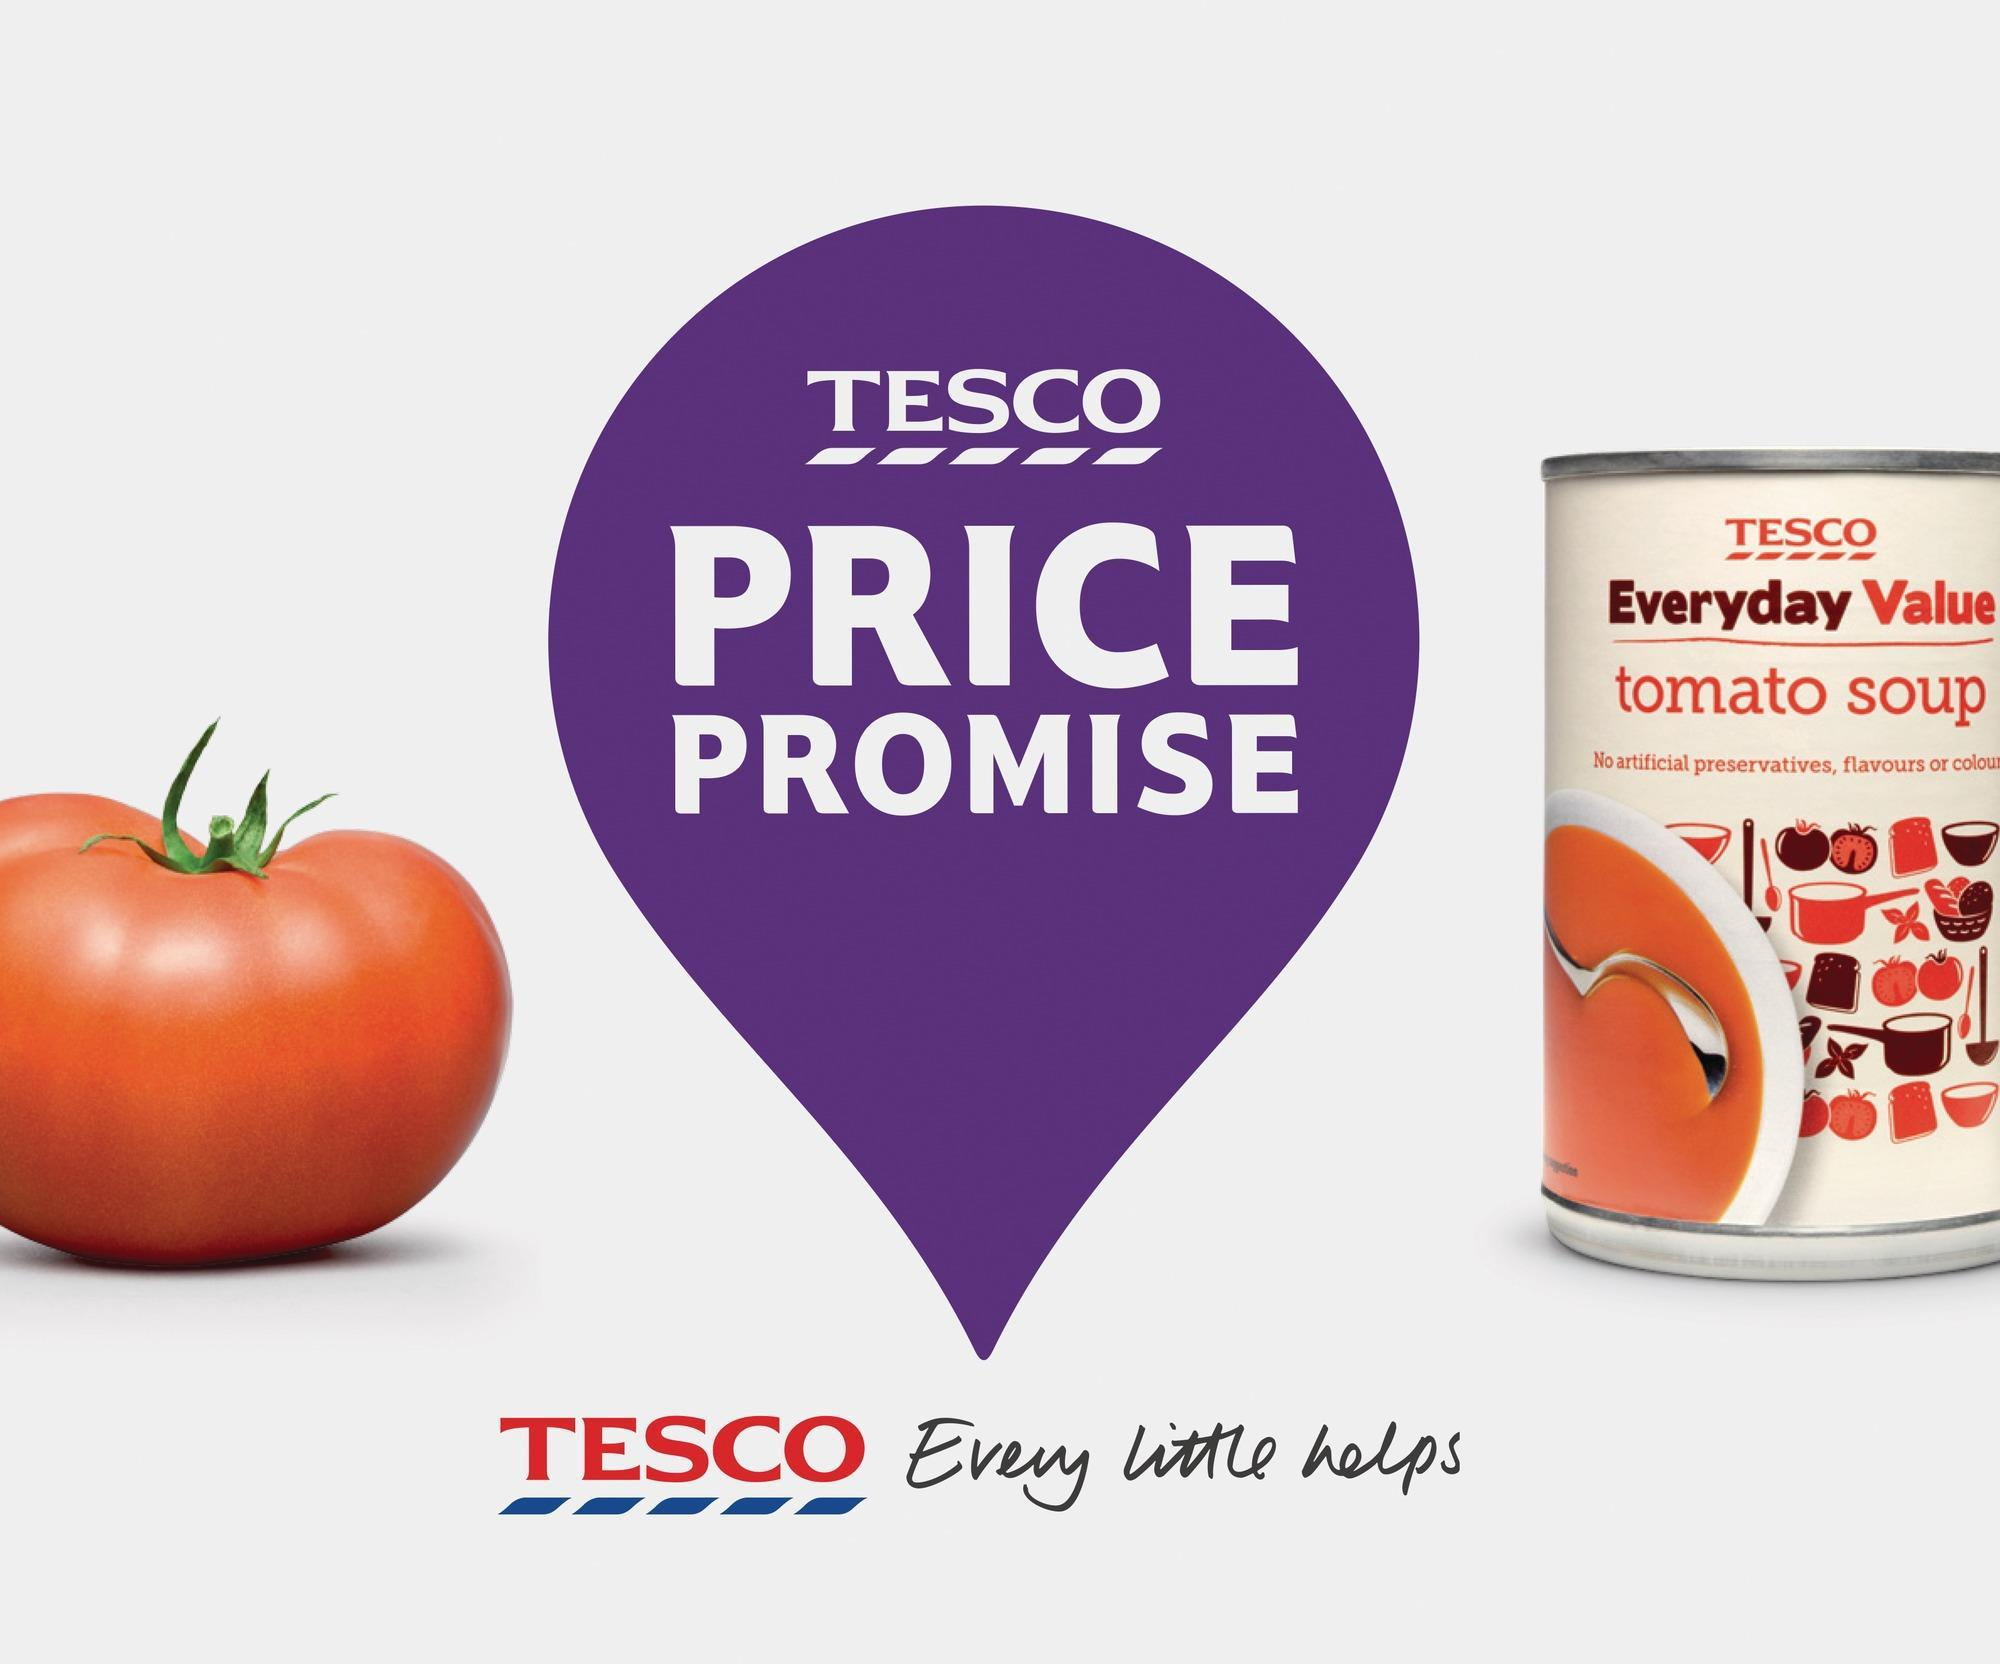 a financial analysis of tesco v. sainsbury essay Financial and strategic analysis: carrefour versus tesco 0 after financial analysis for tesco and carrefour had been performed  such as sainsbury.